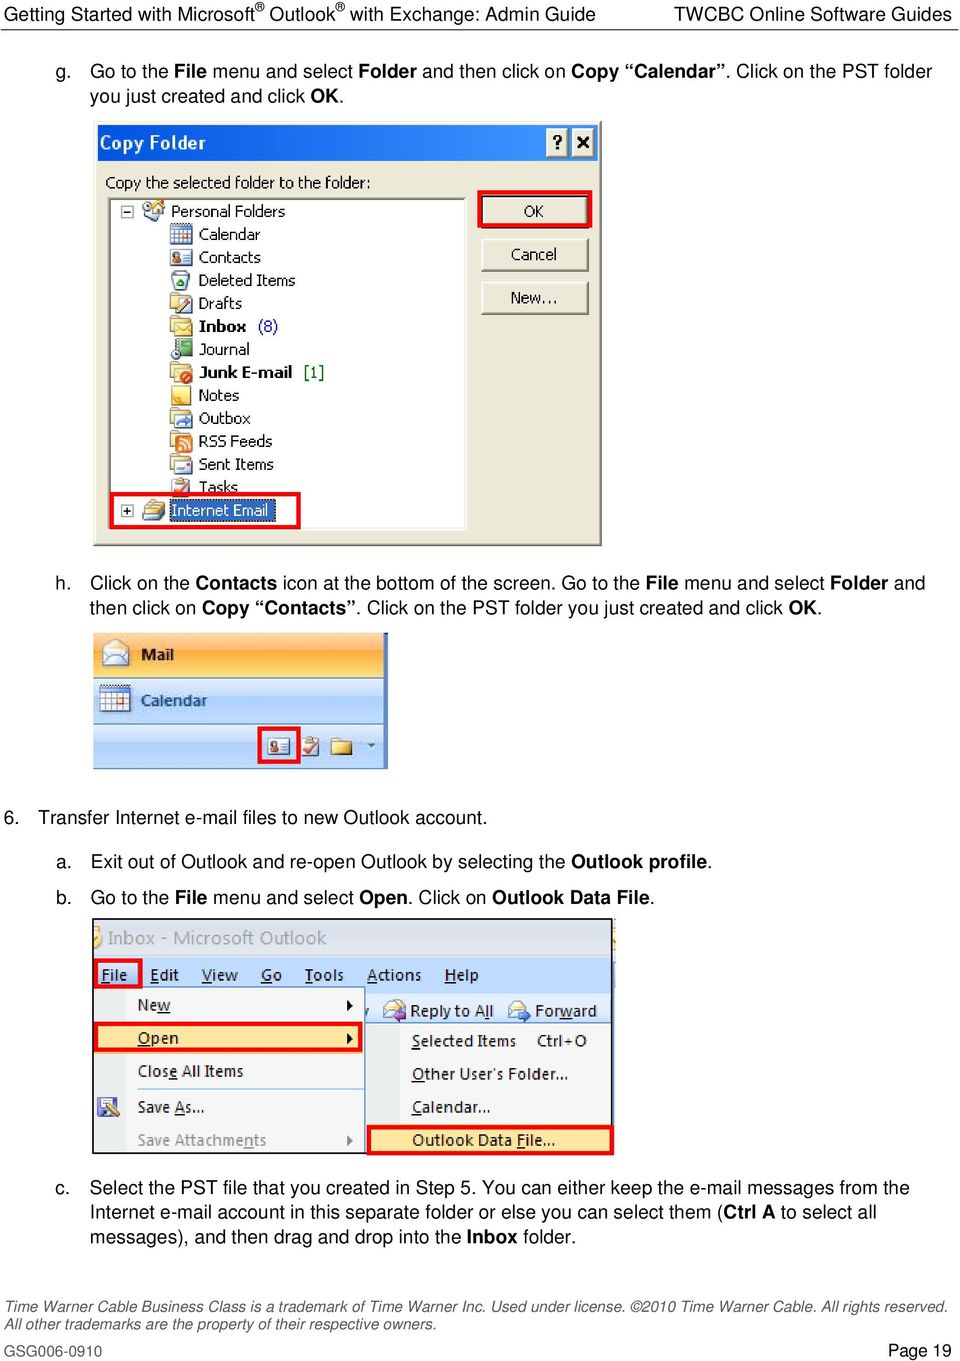 b. Go to the File menu and select Open. Click on Outlook Data File. c. Select the PST file that you created in Step 5.